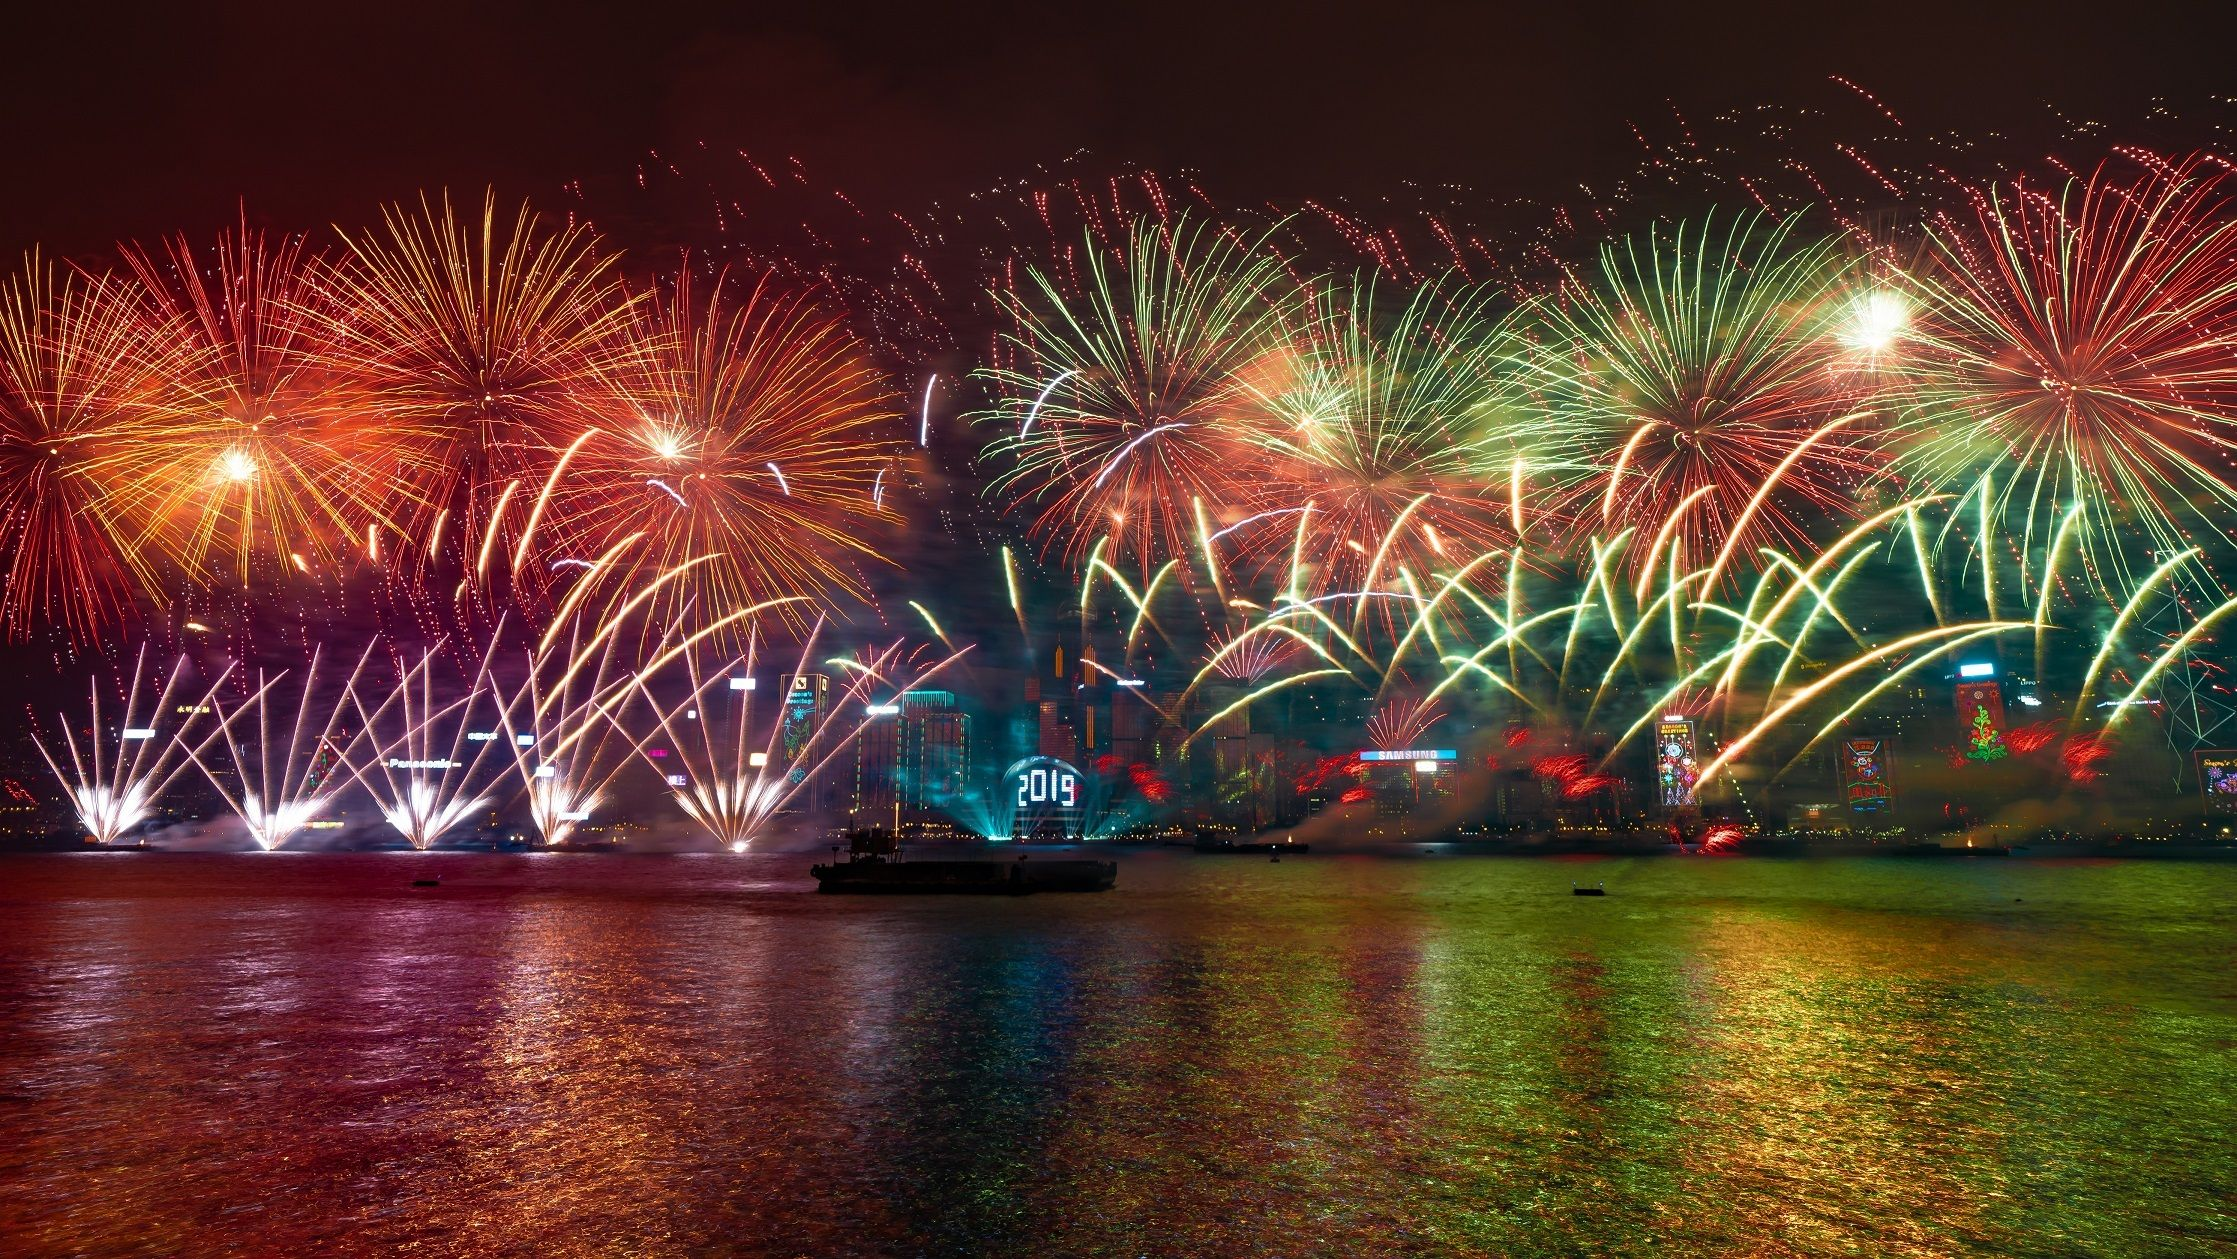 Fireworks And Stunning Pyrotechnics Will Reign Supreme At Hong Kong S Spectacular New Year S Eve Countdown Photo Calendar New Year S Eve Countdown Photo